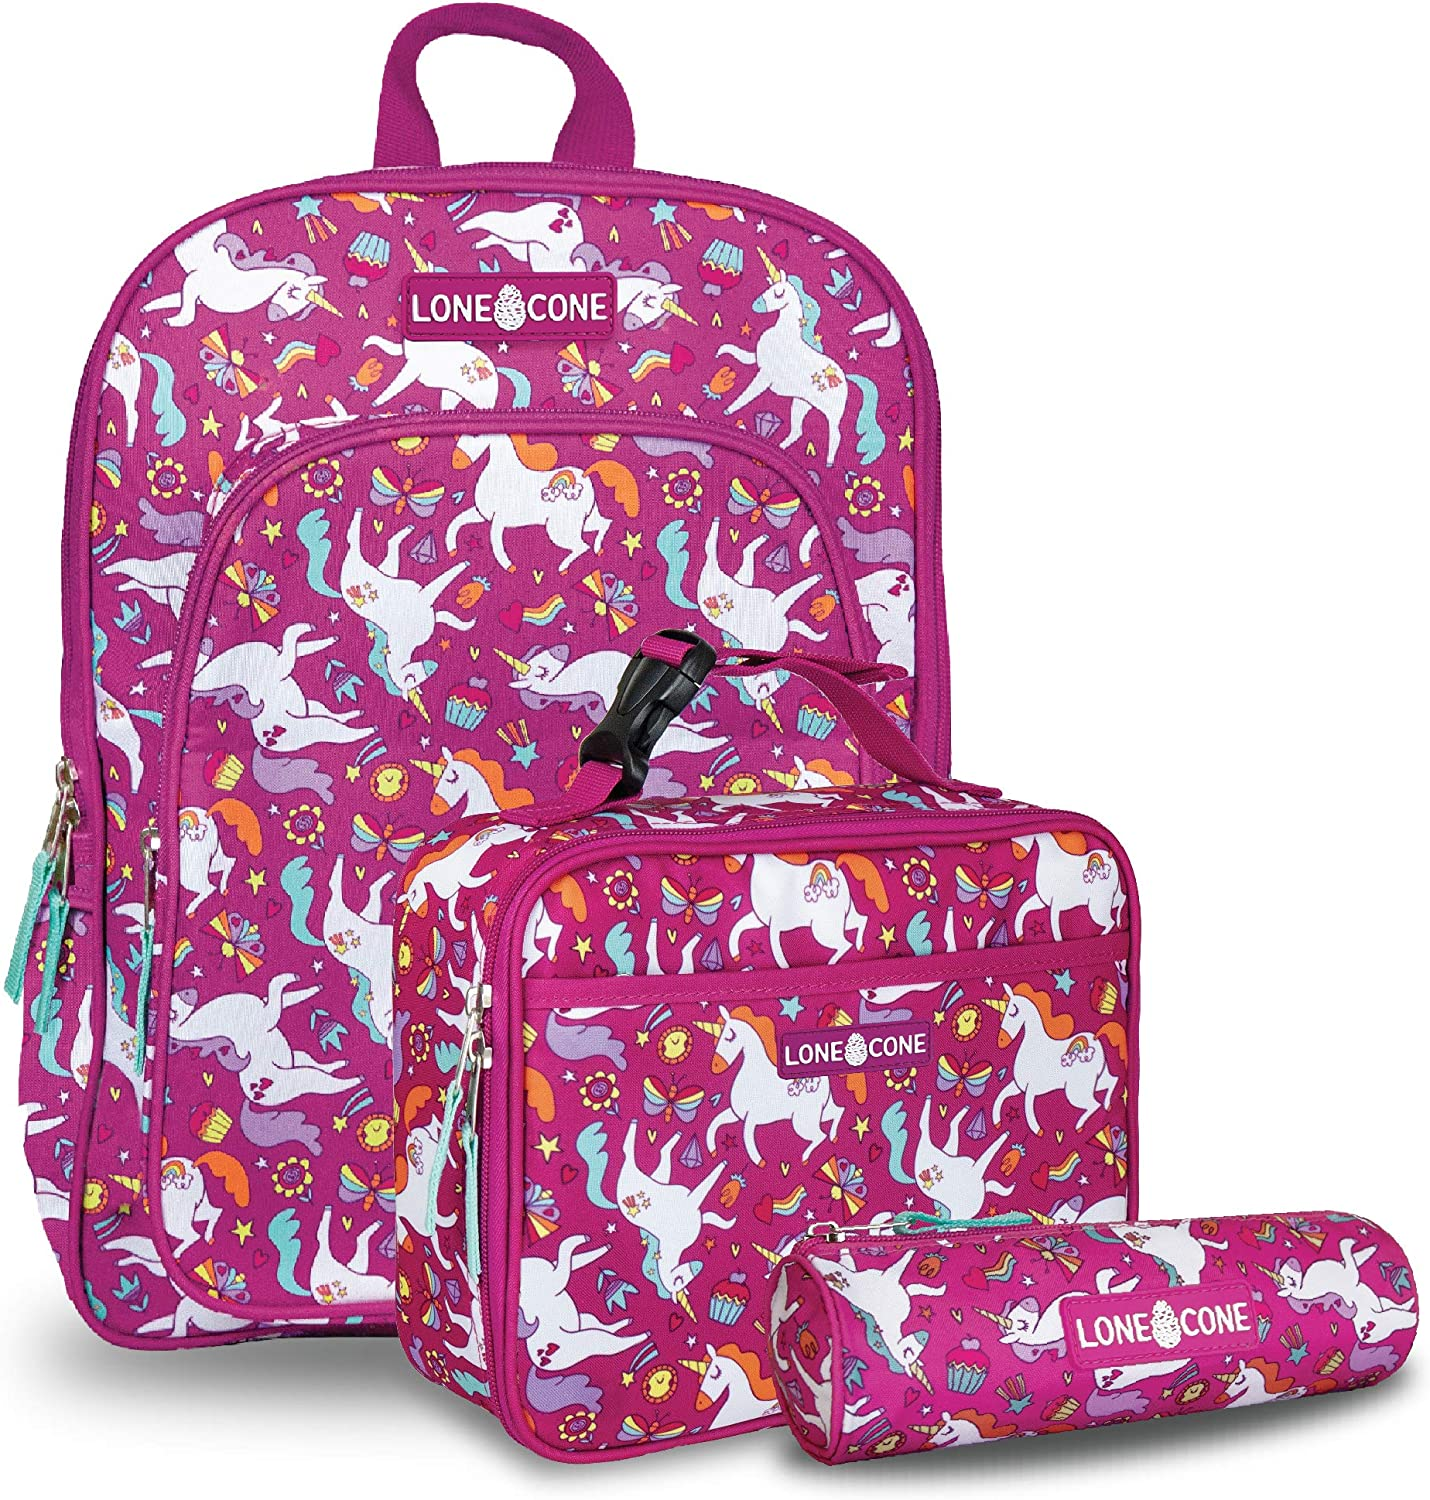 LONECONE Kids' 3-Piece Back to School Kit - Backpack, Lunchbox & Pencil Case- Mary the Unicorn